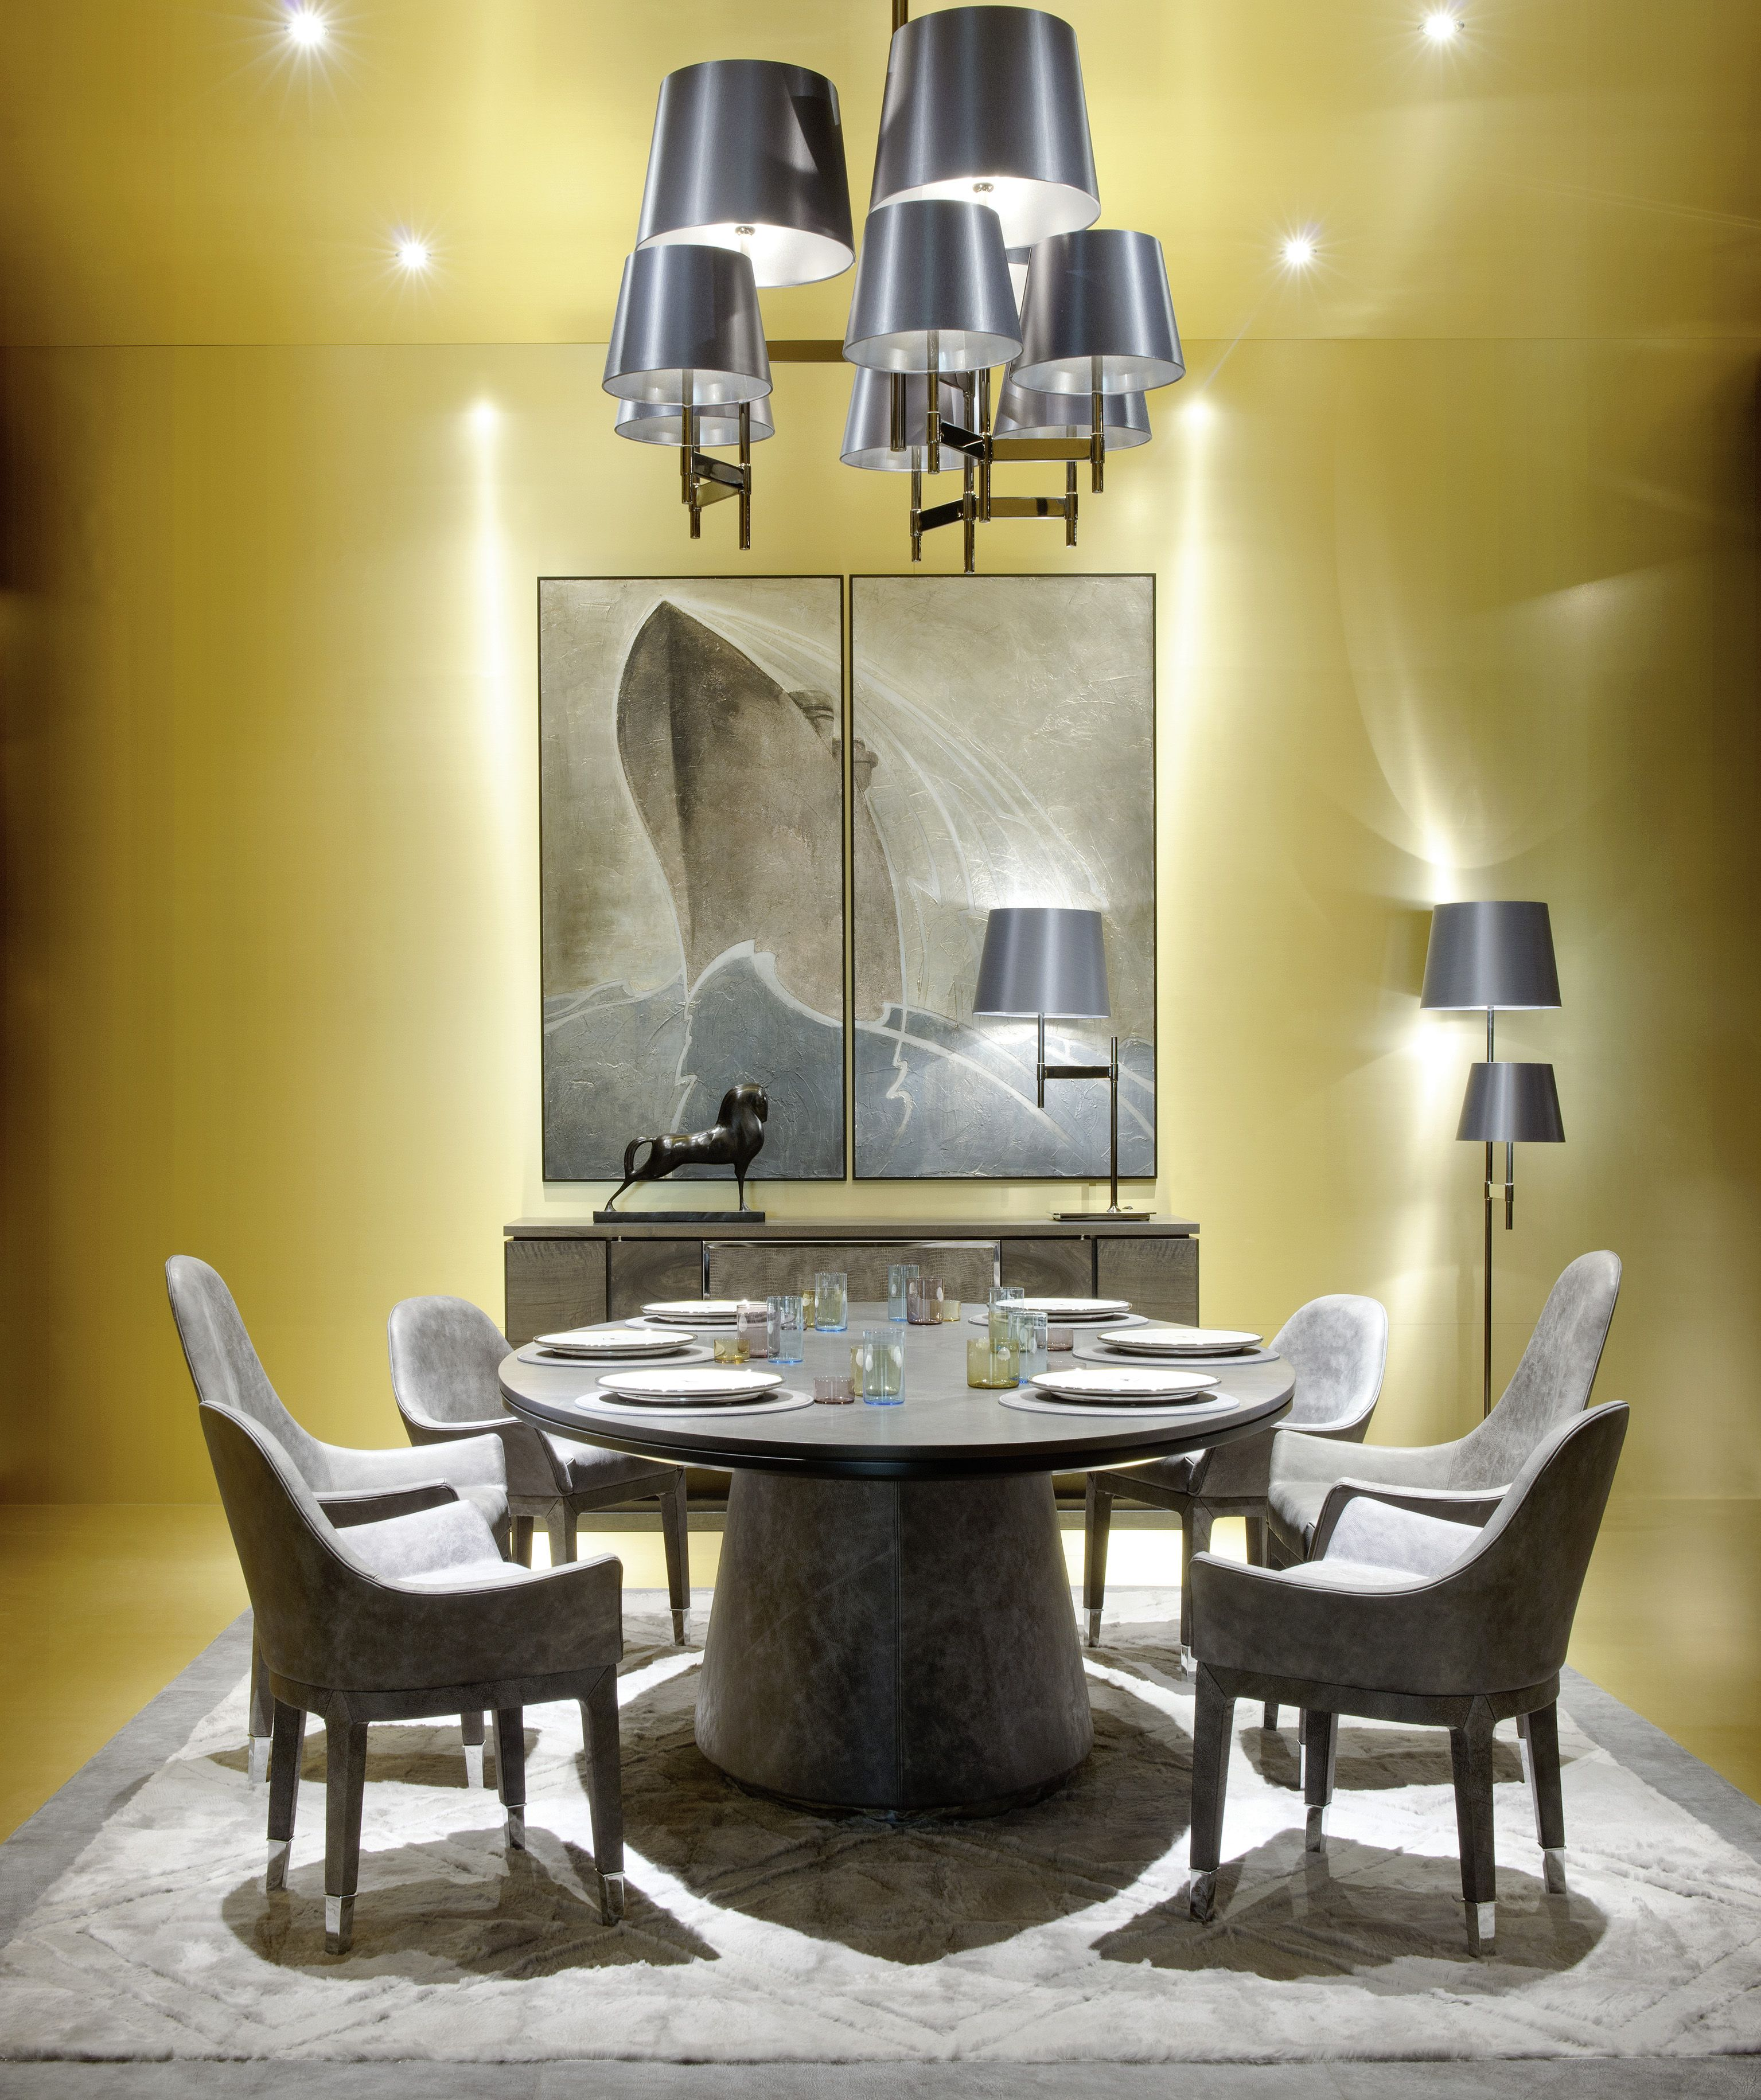 Superior Collezione Beyond Kate Chair By Smania | Tables ,chairs And Stools |  Pinterest | Tables, Stools And Walls Awesome Design